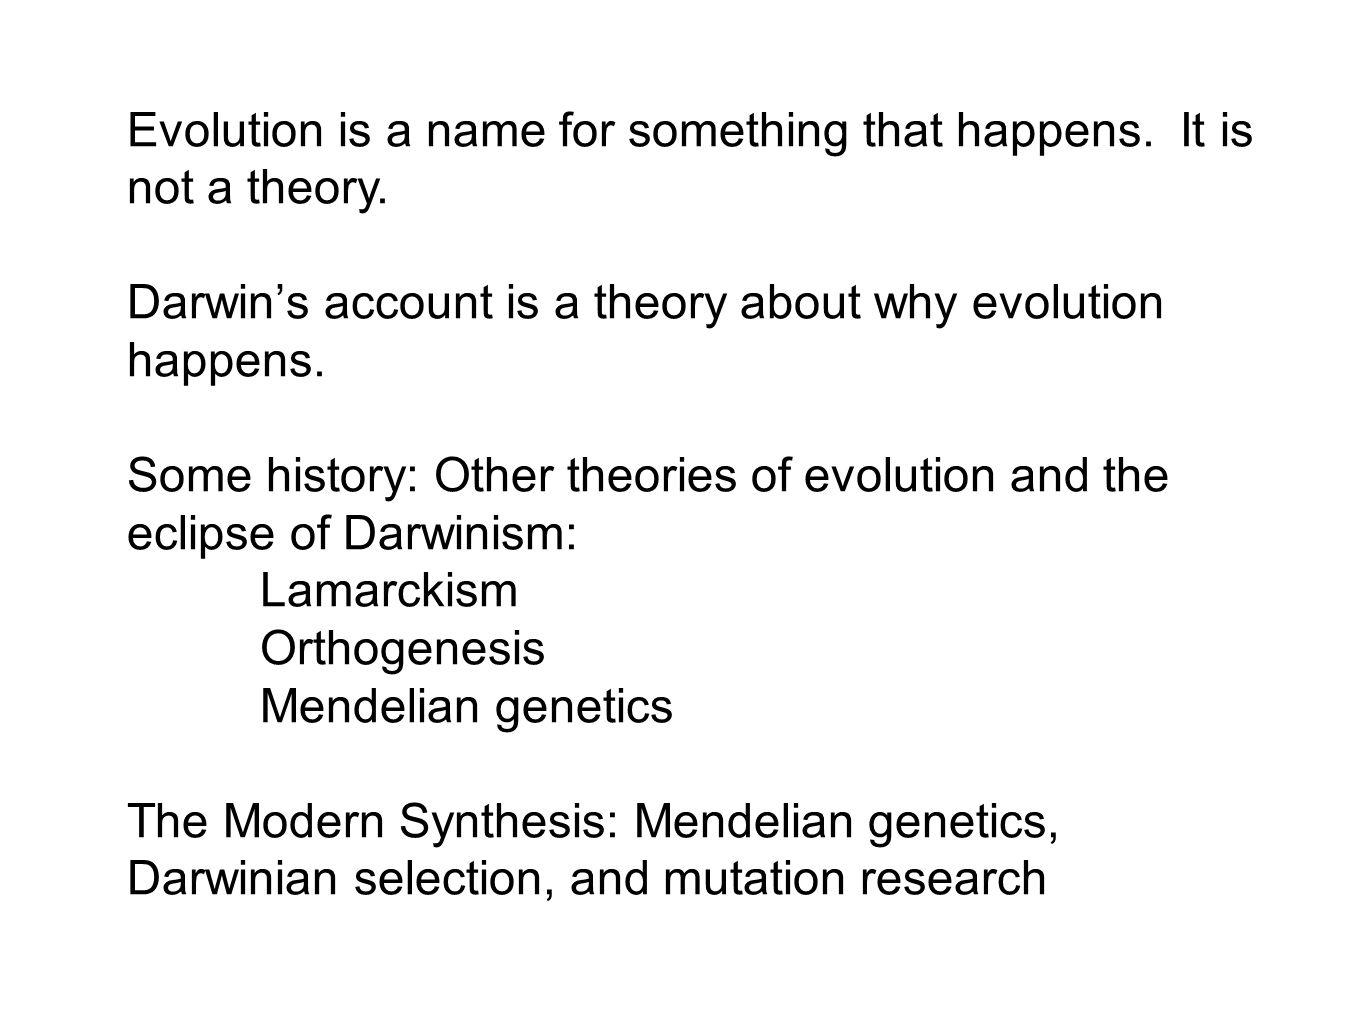 Evolution is a name for something that happens. It is not a theory. Darwins account is a theory about why evolution happens. Some history: Other theor